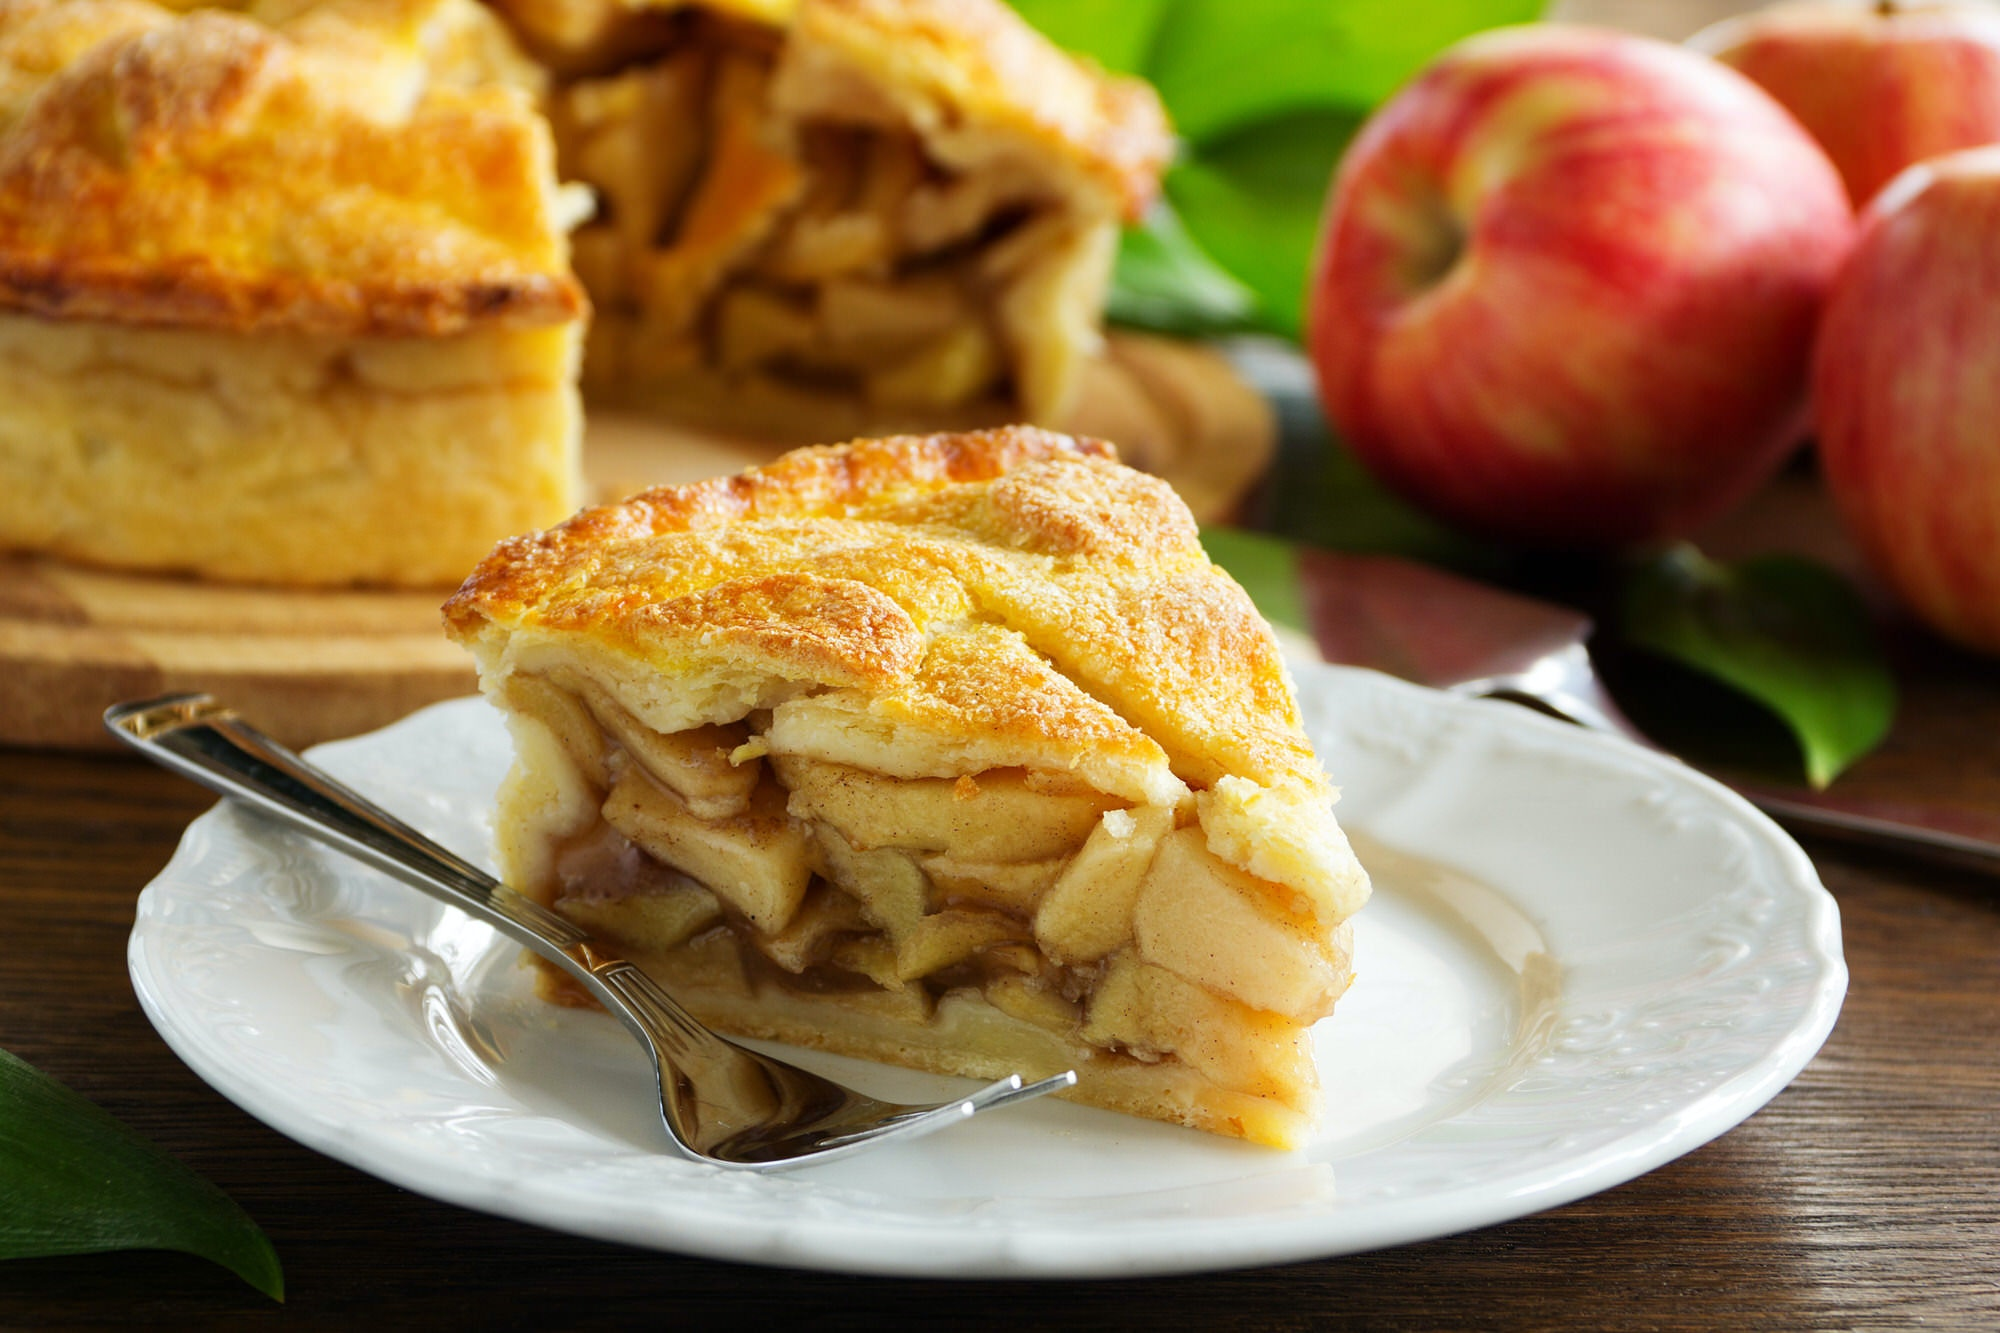 A thick slice of American apple pie